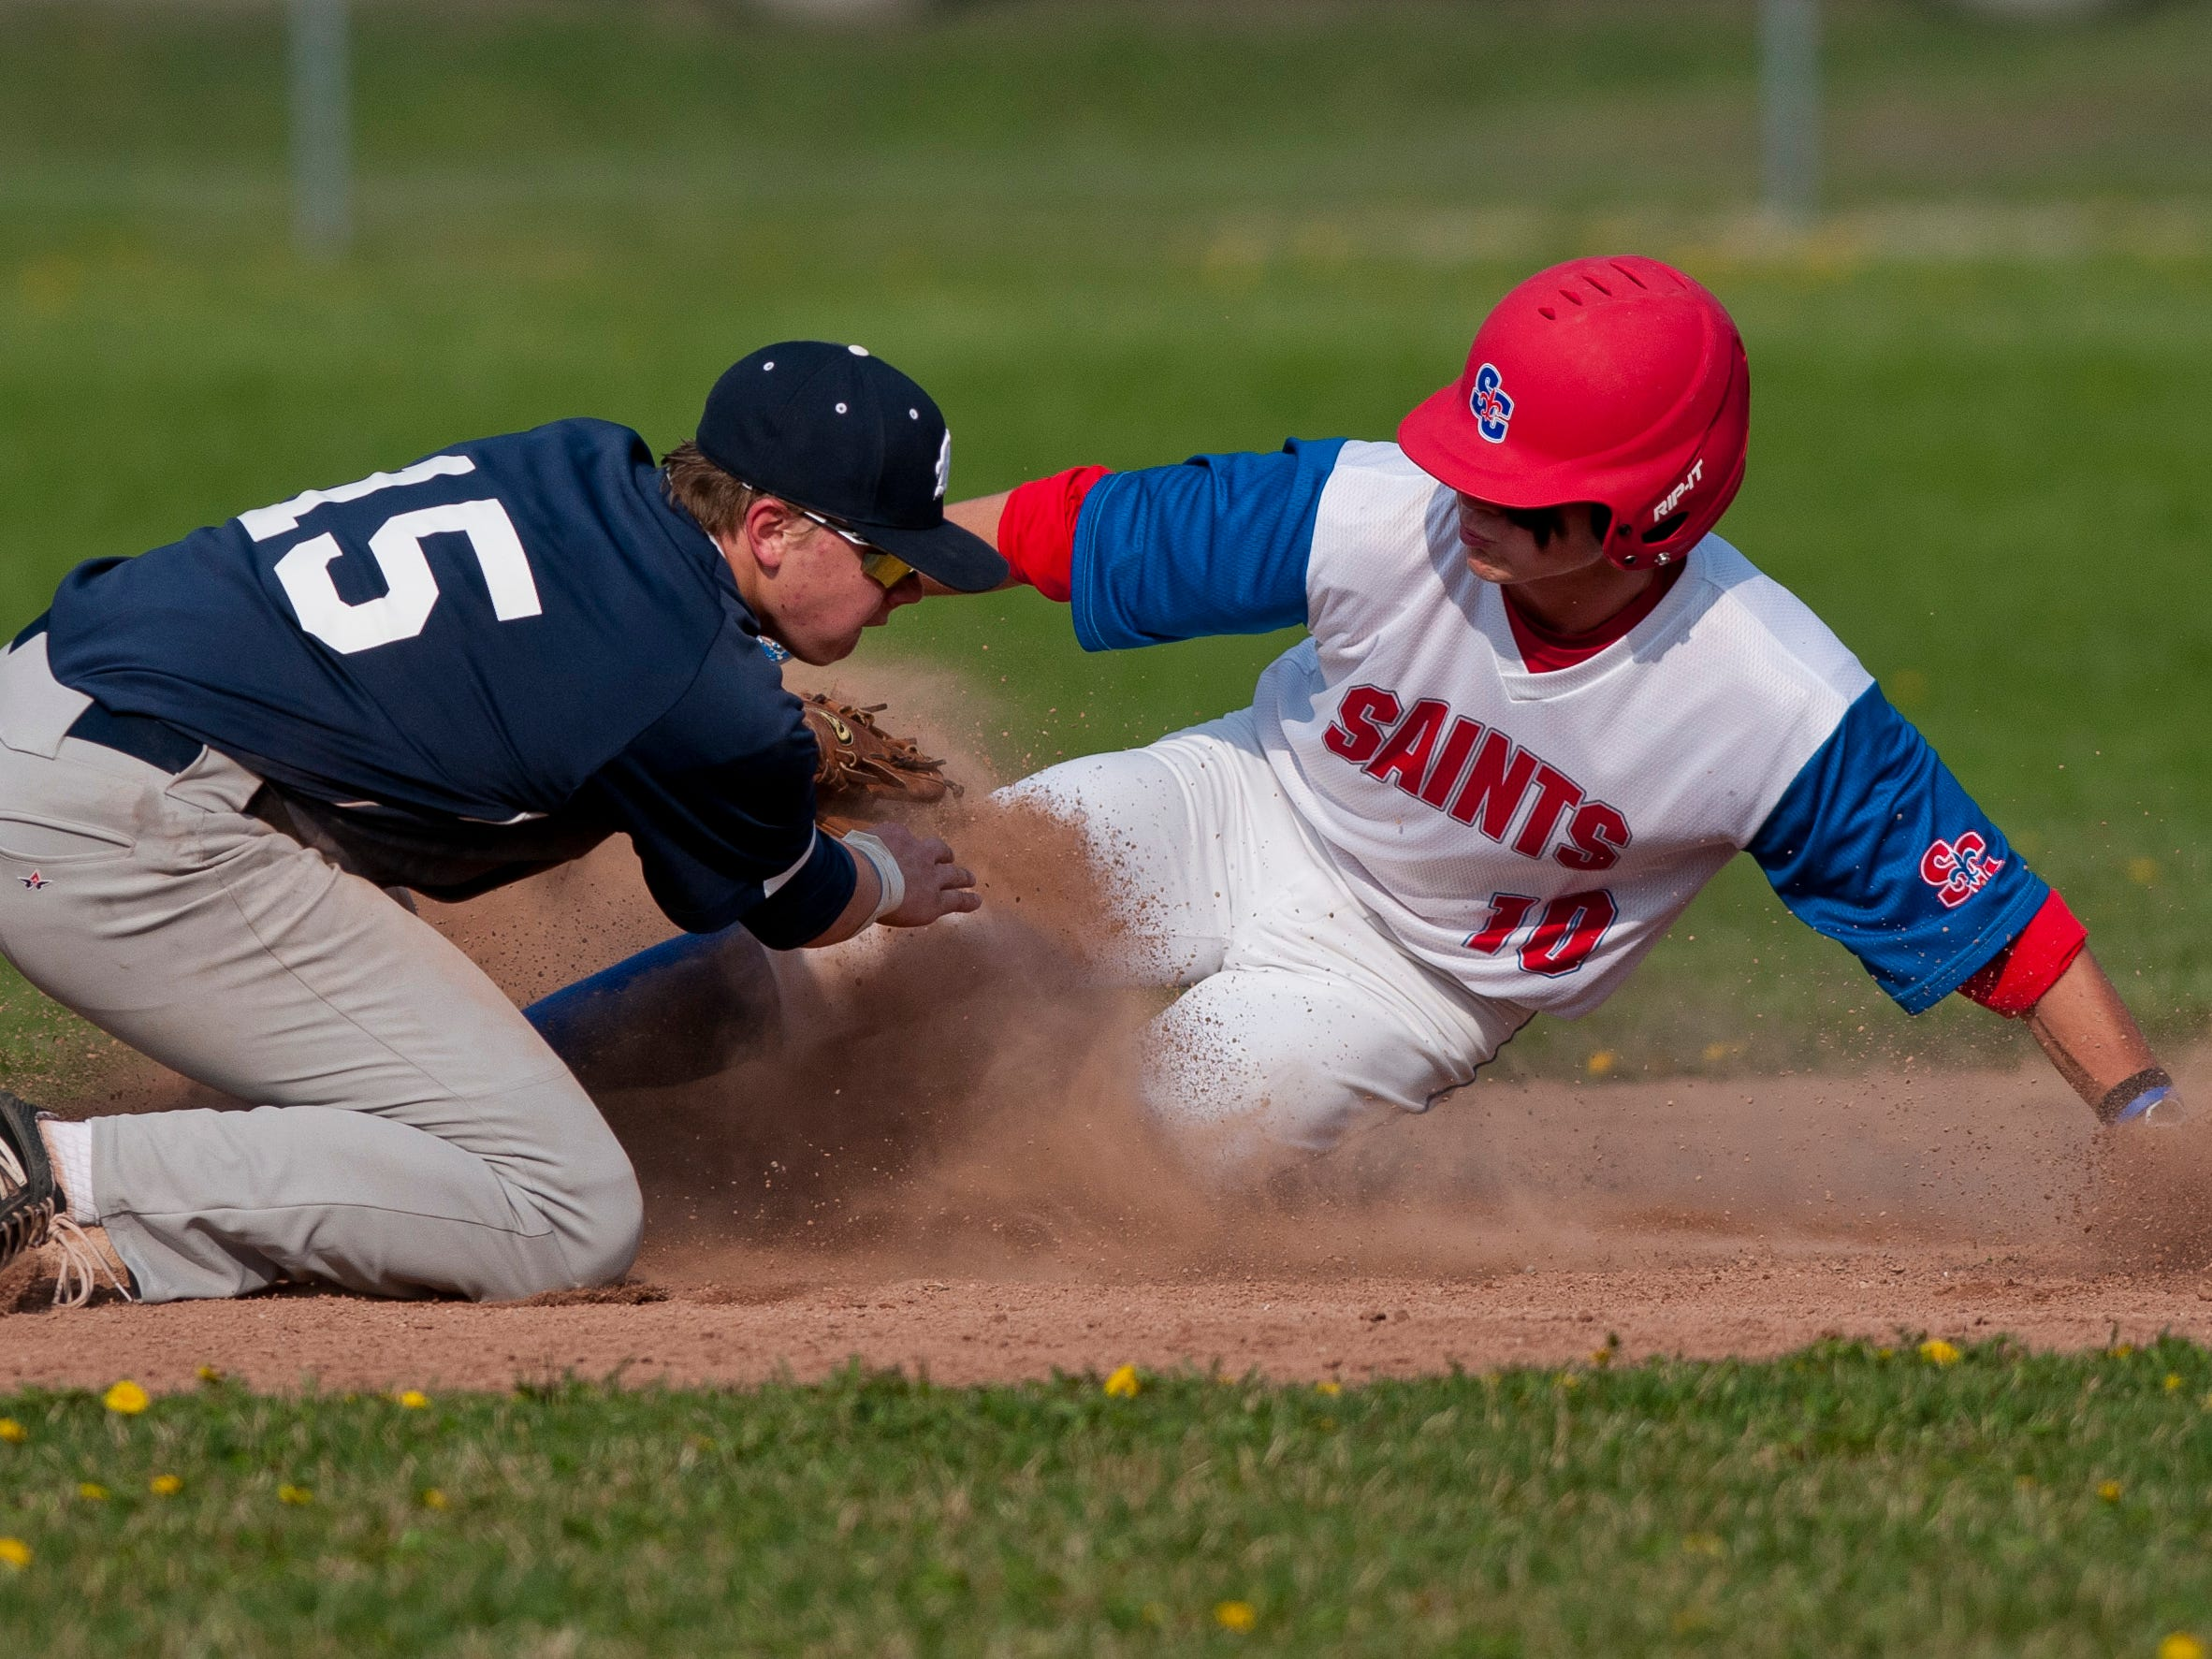 St. Clair's Adam Tobey slides safely into second base in front of Marysville's Austin Paterson during a baseball game Wednesday, May 6, 2015 at St. Clair High School.